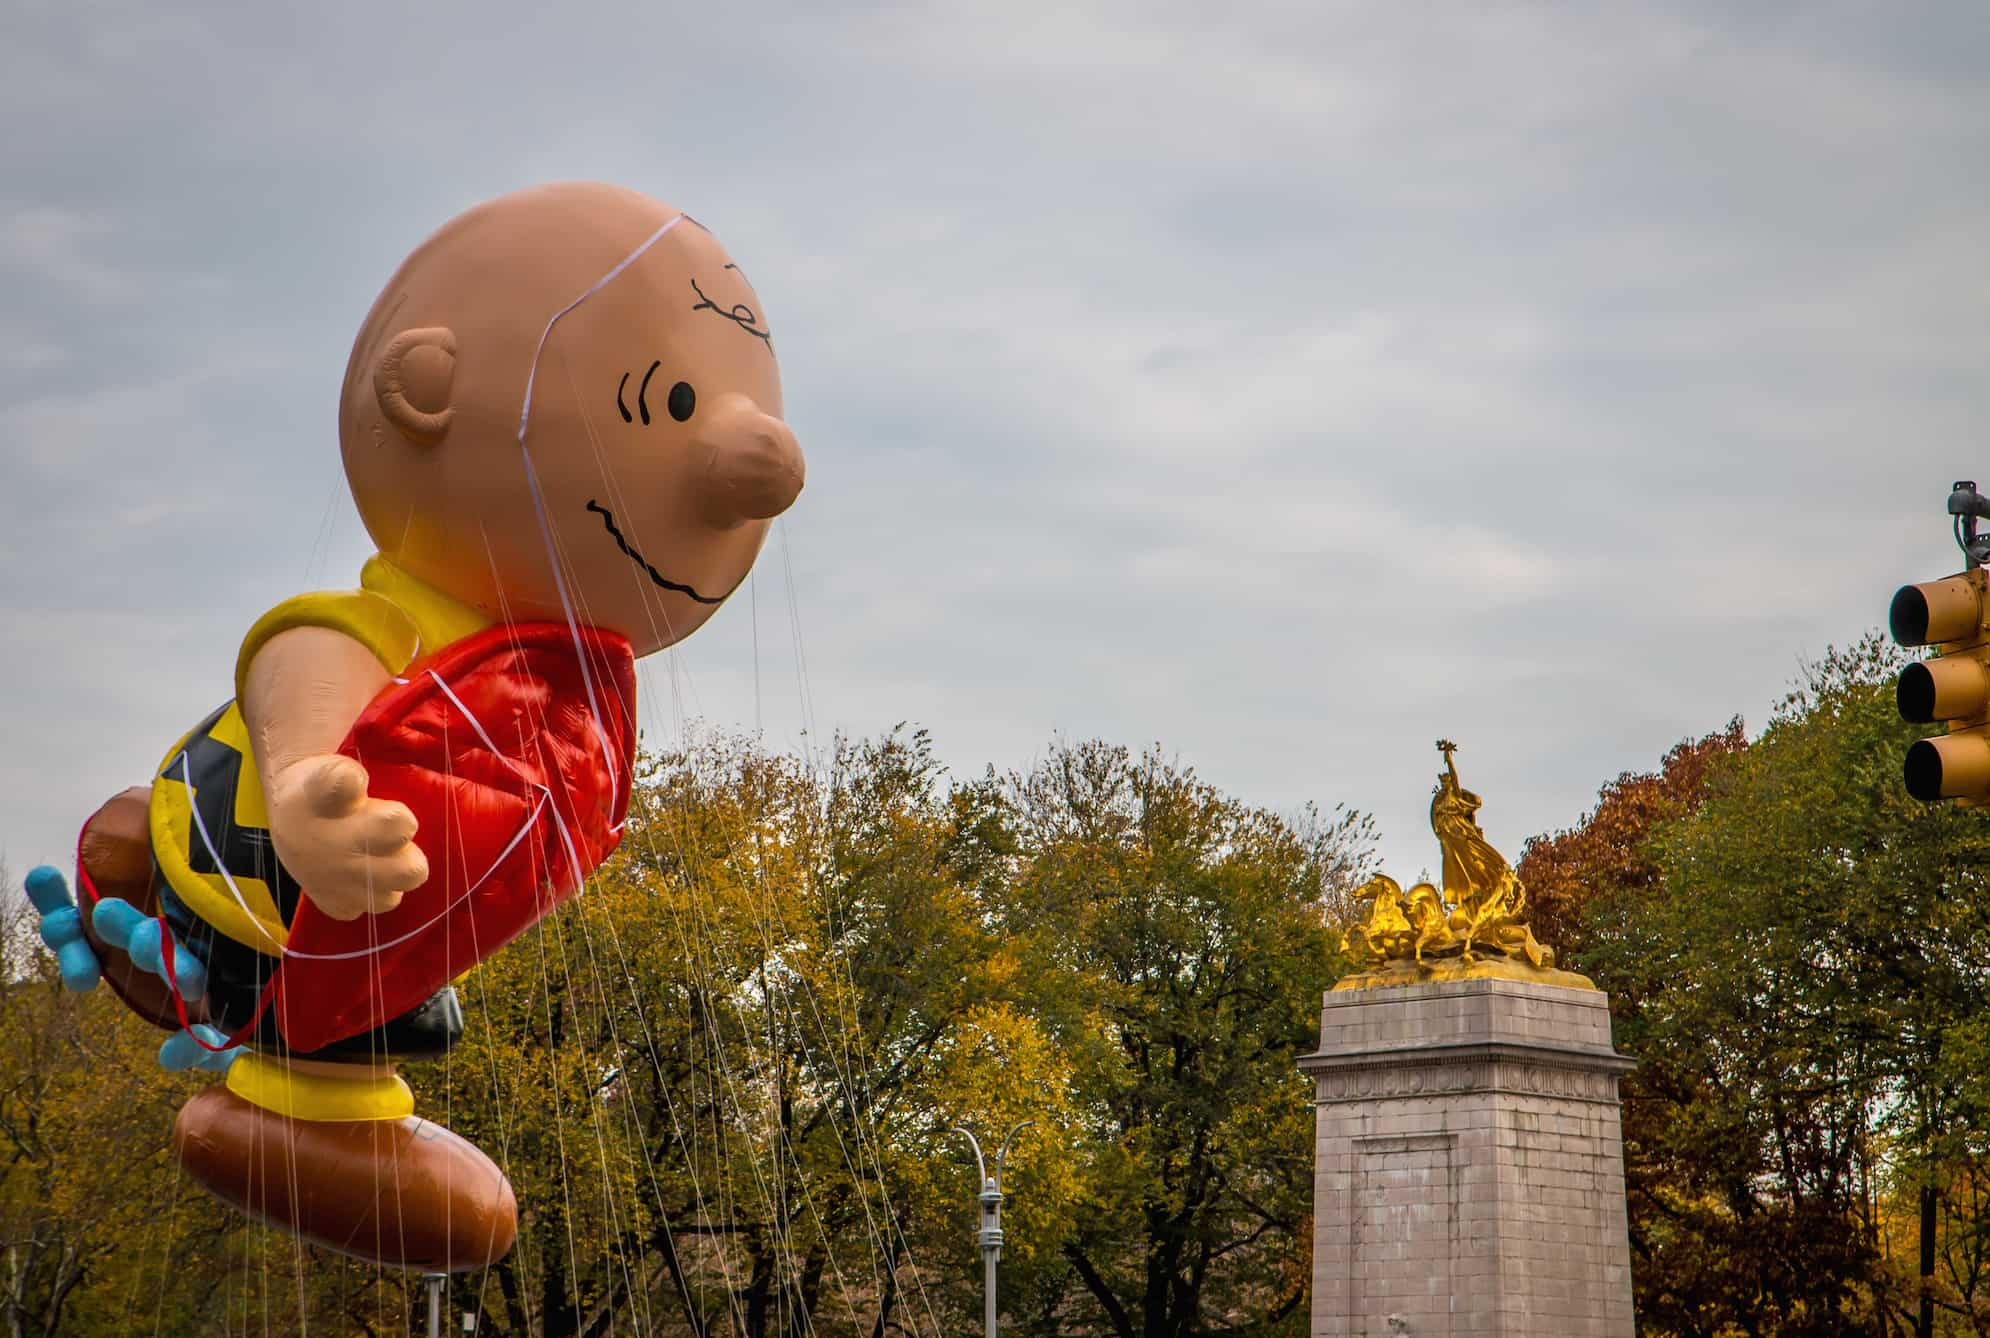 90th macy's thanksgiving day parade- Charlie Brown